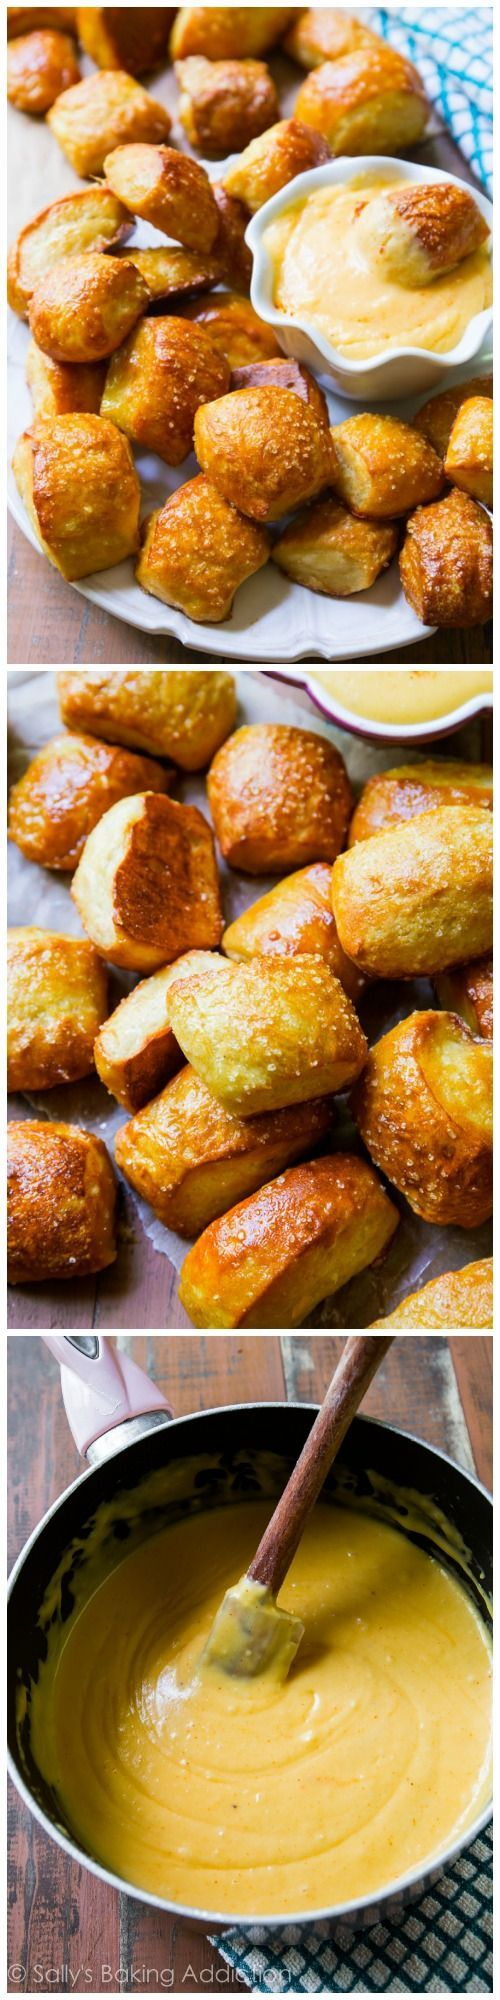 Easy Soft Pretzel Bites with Spicy Kicked-Up Cheese Sauce - you won't be able to stop reaching for bite after bite!